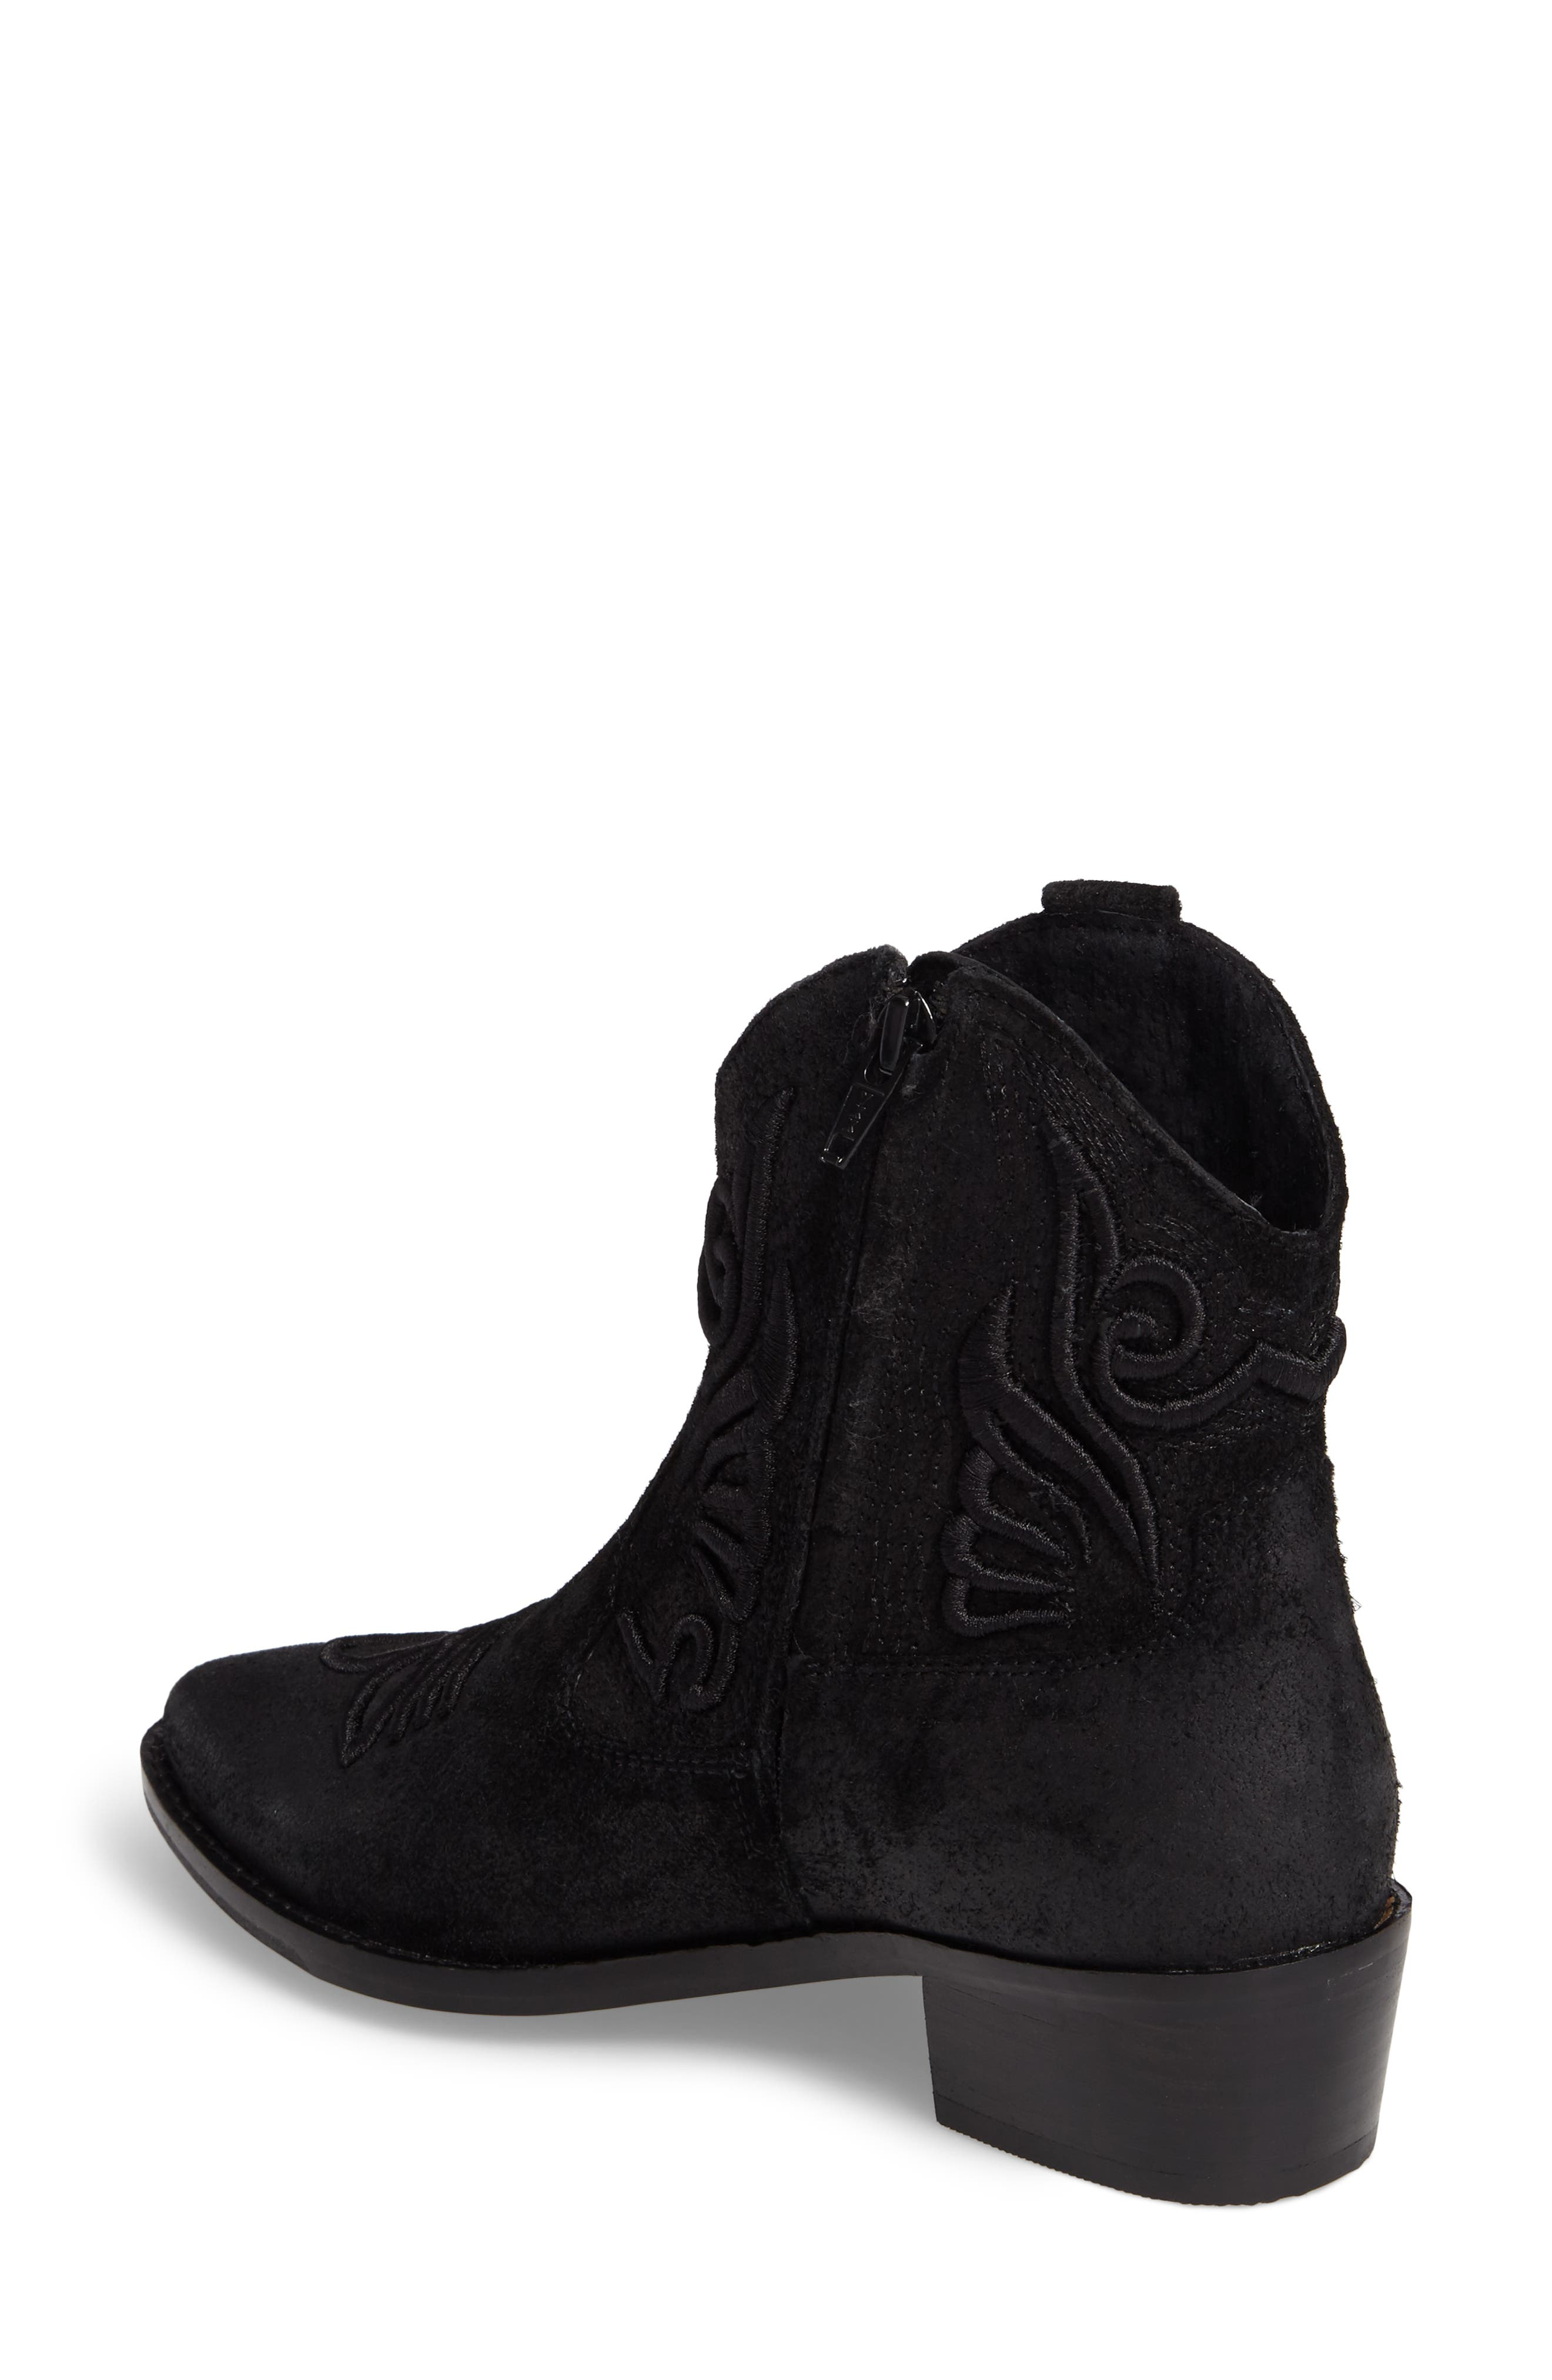 Apple Crumble Embroidered Bootie,                             Alternate thumbnail 2, color,                             001